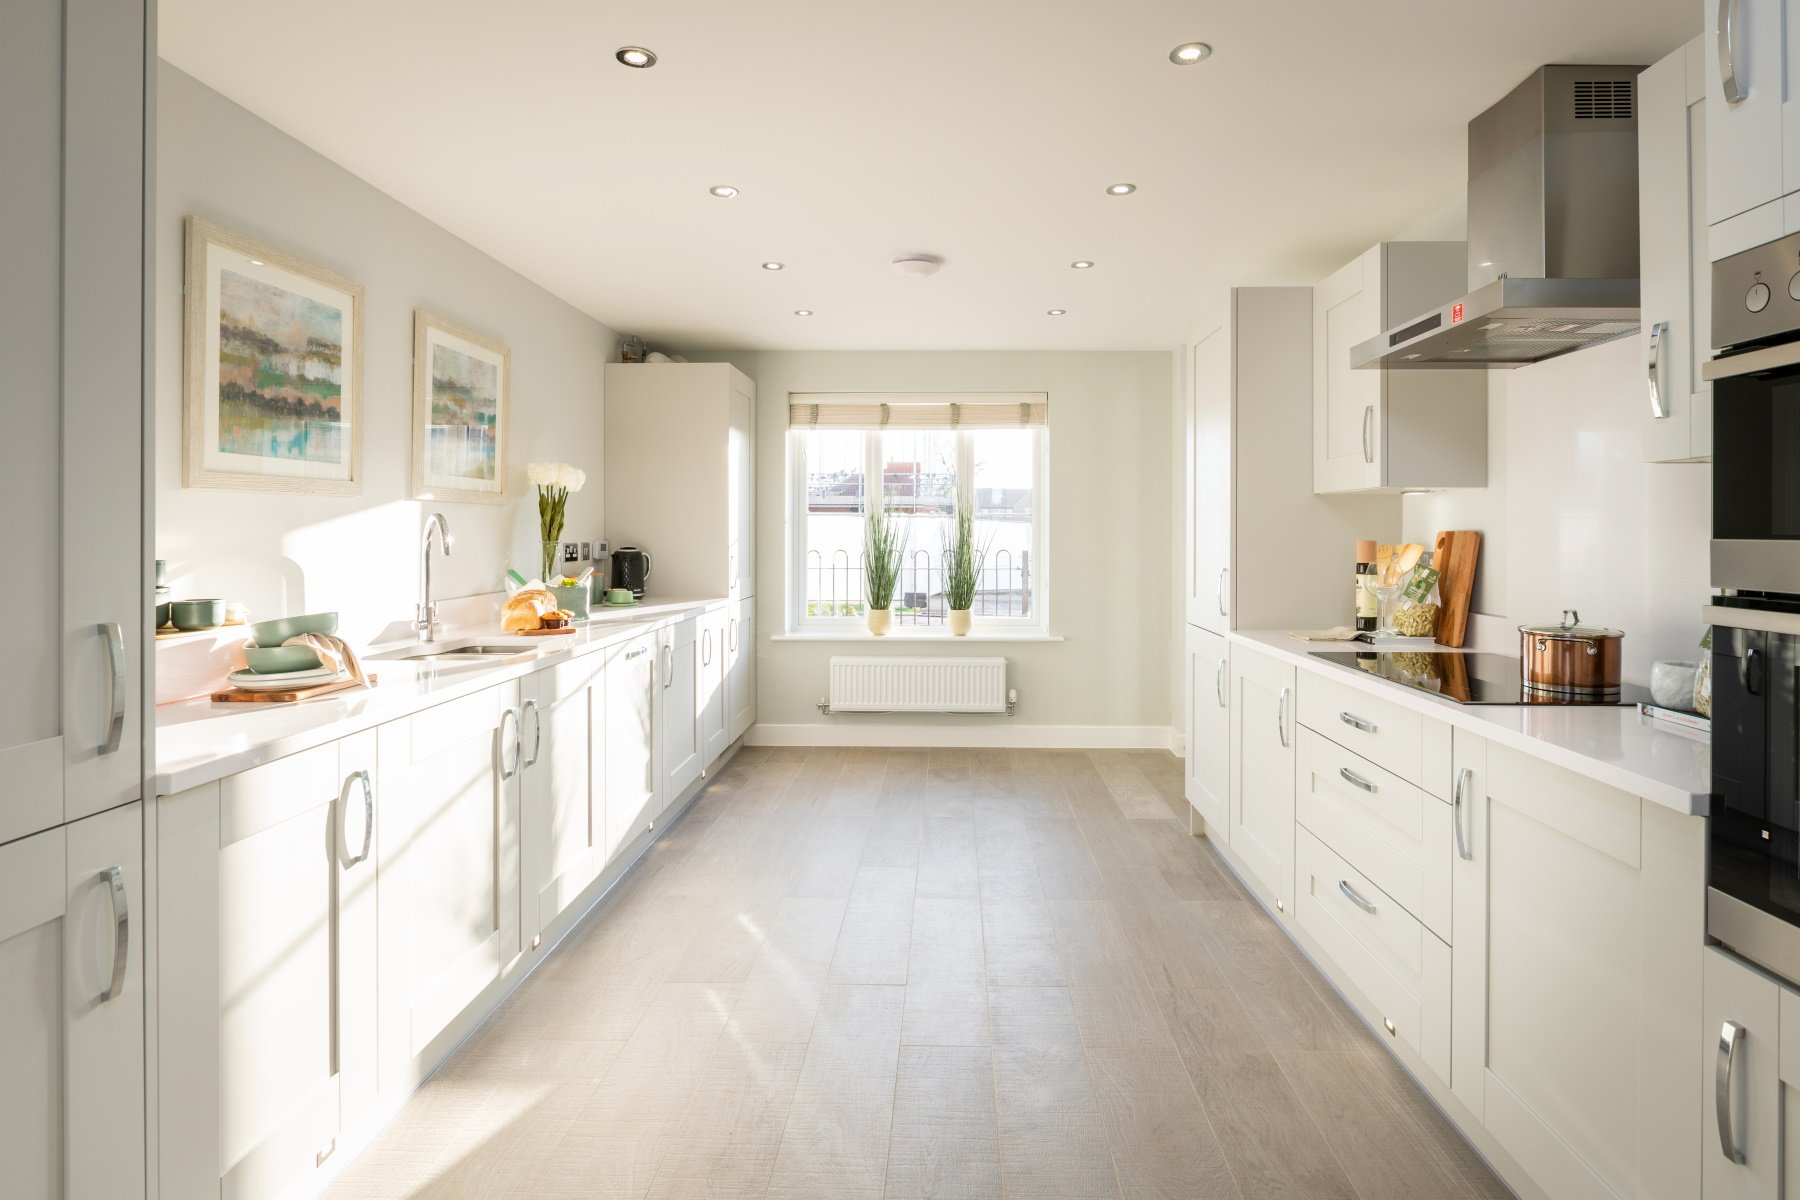 TW Exeter - Cranbrook - Thornford example kitchen